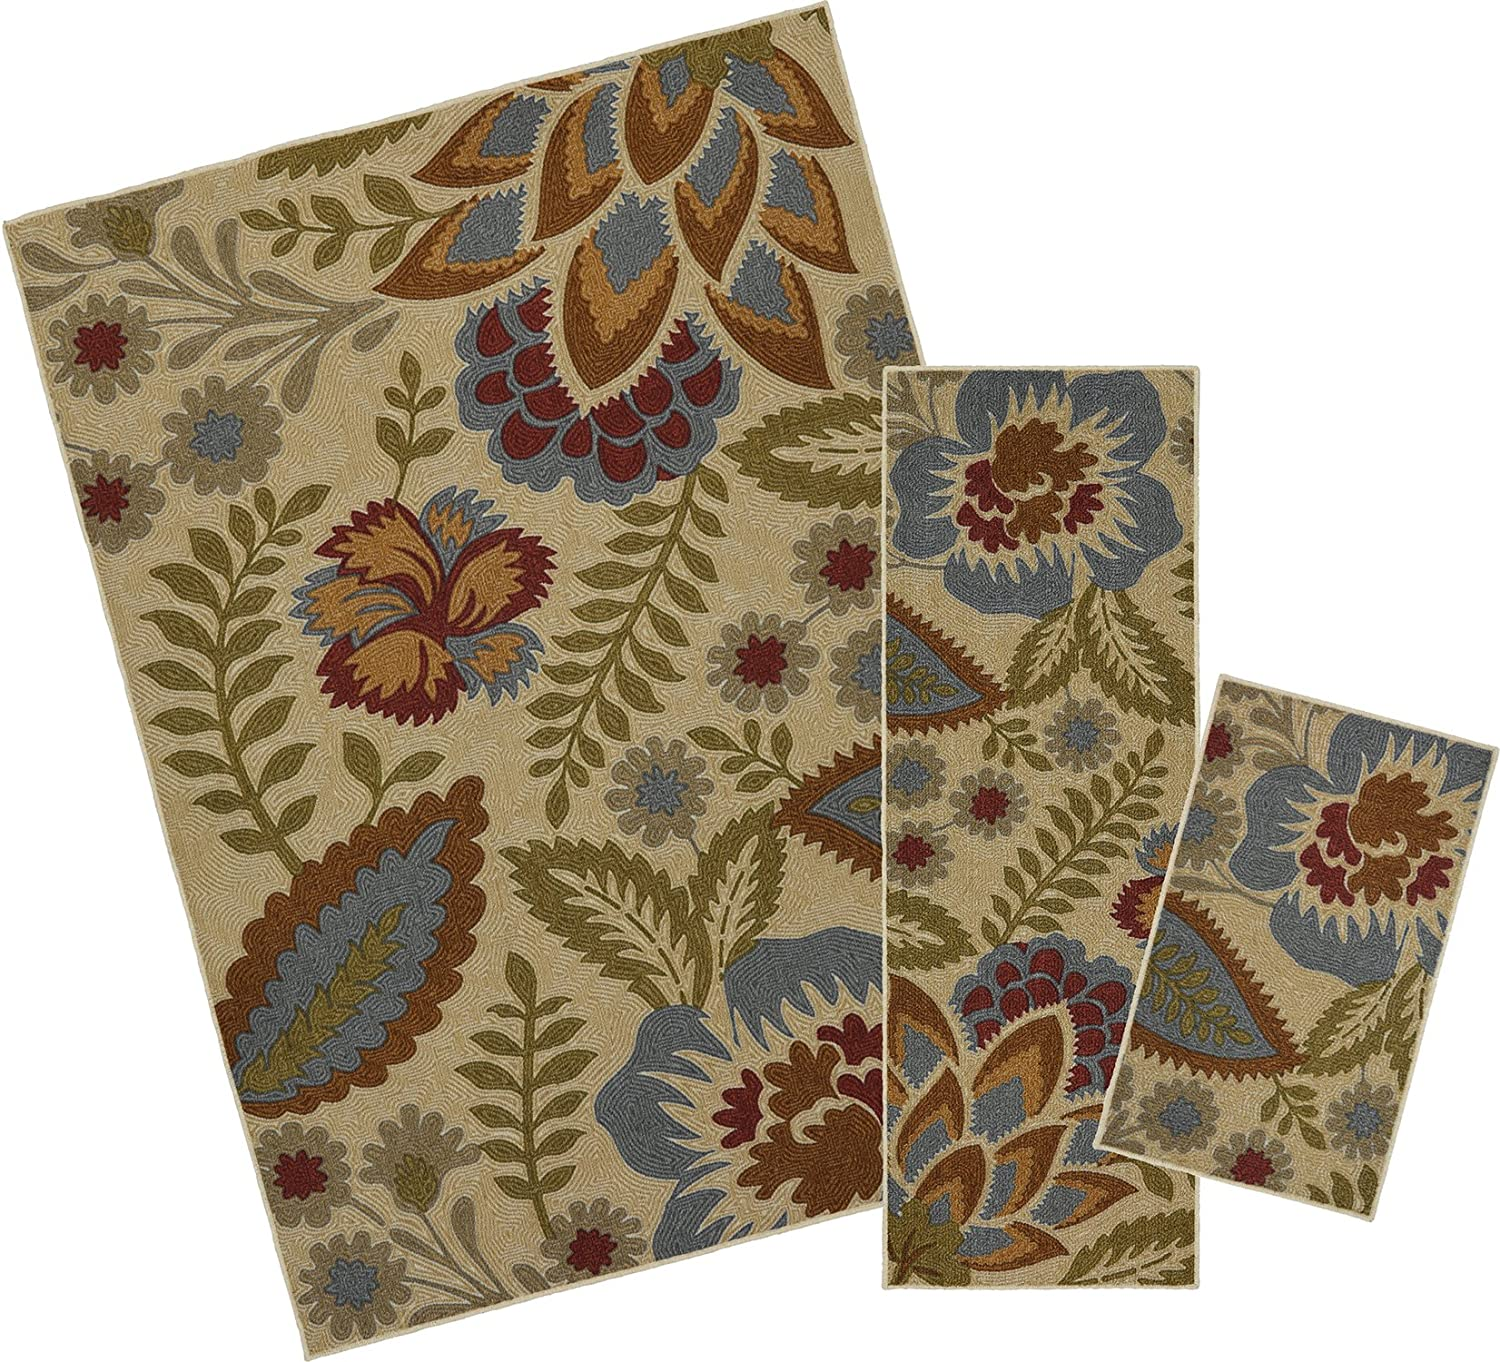 Mohawk Home Soho Crewel Floral Spice Printed Area Rug Set, Set Contains: 1'6x2'6, 1'8x5' and 5'x7' Set Contains: 1'6x2'6 1'8x5' and 5'x7' CRFAS 299 ASSTD